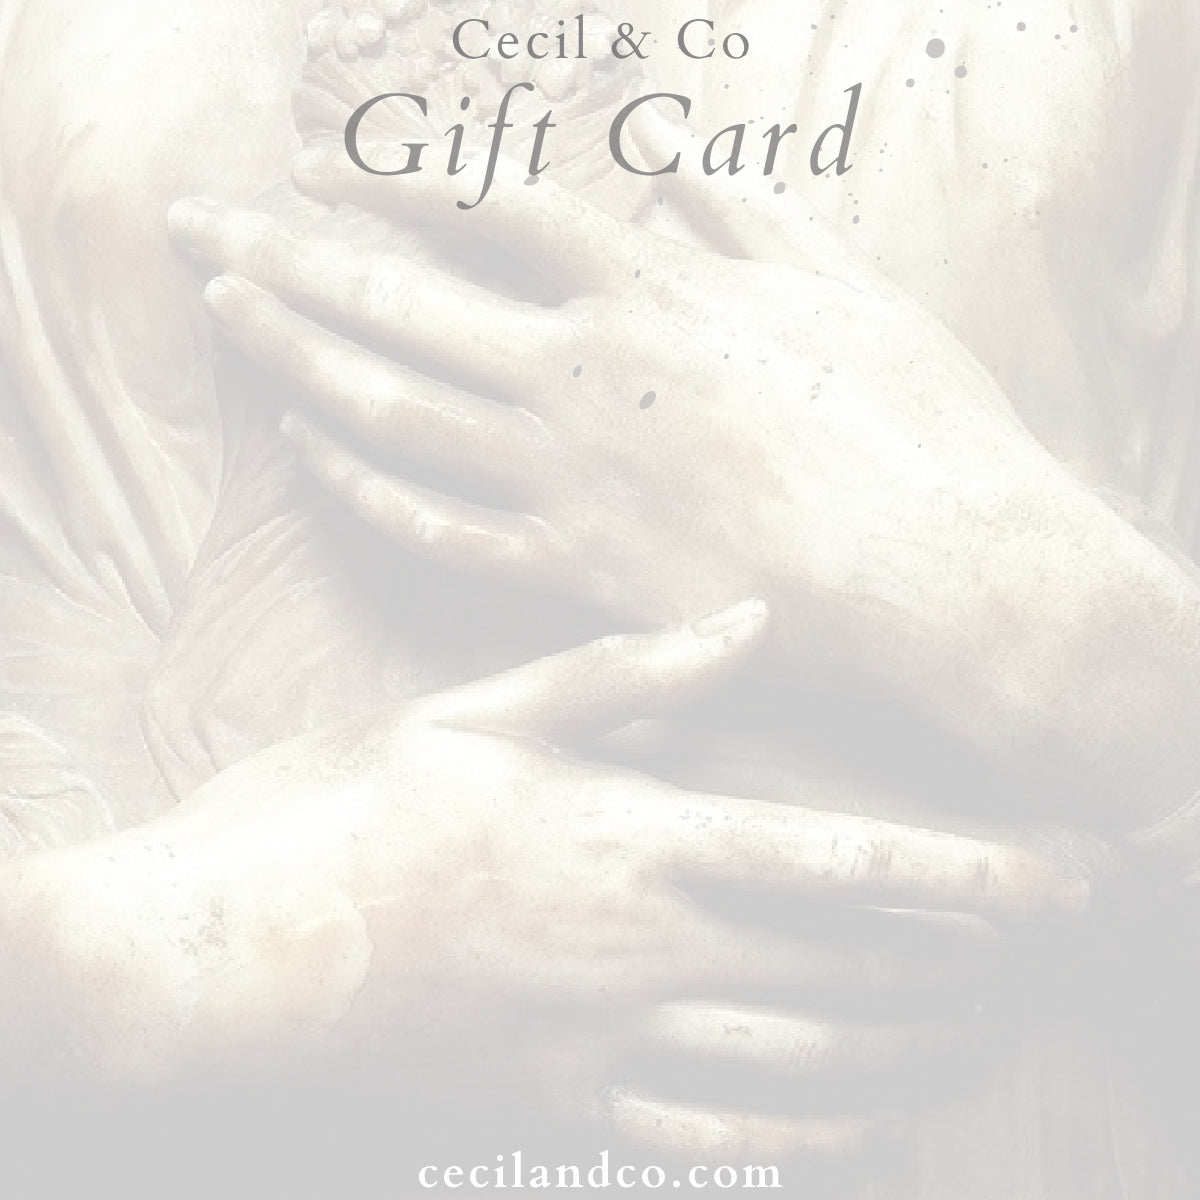 Cecil and Co Gift Card